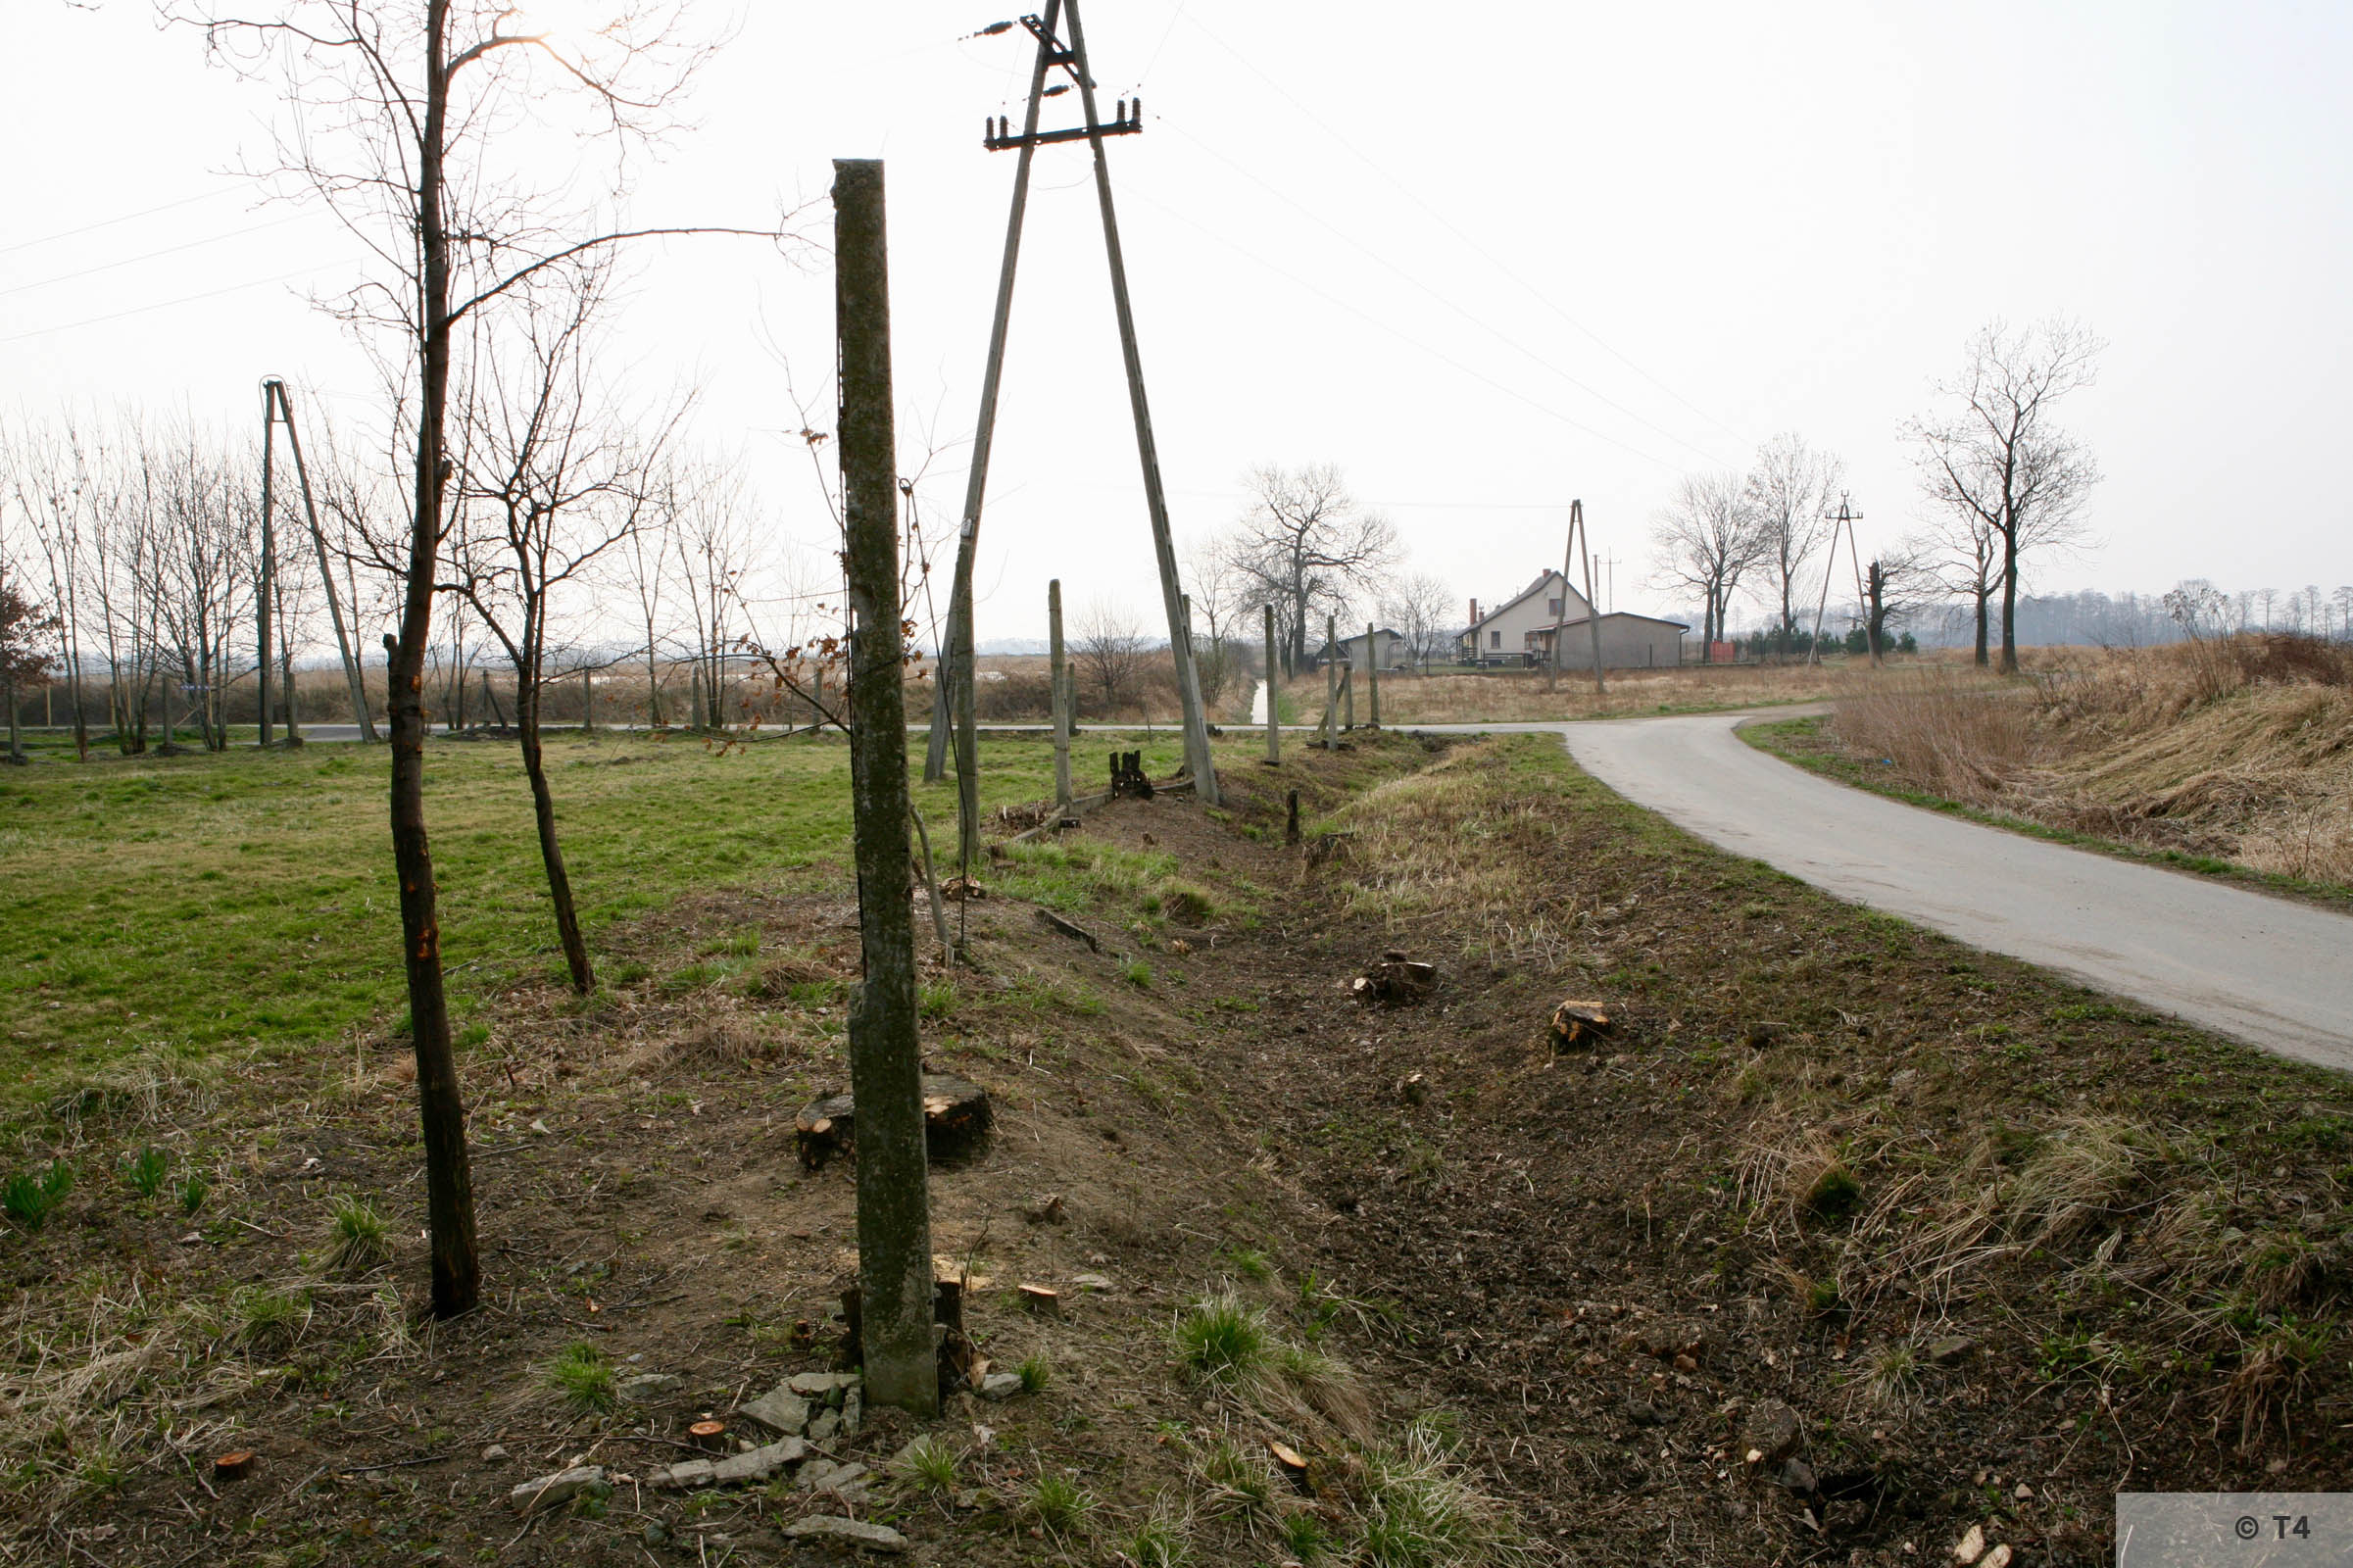 Remnants of the concrete posts probably used to surround the places of work and accommodation and work. 200'7 T4 3589